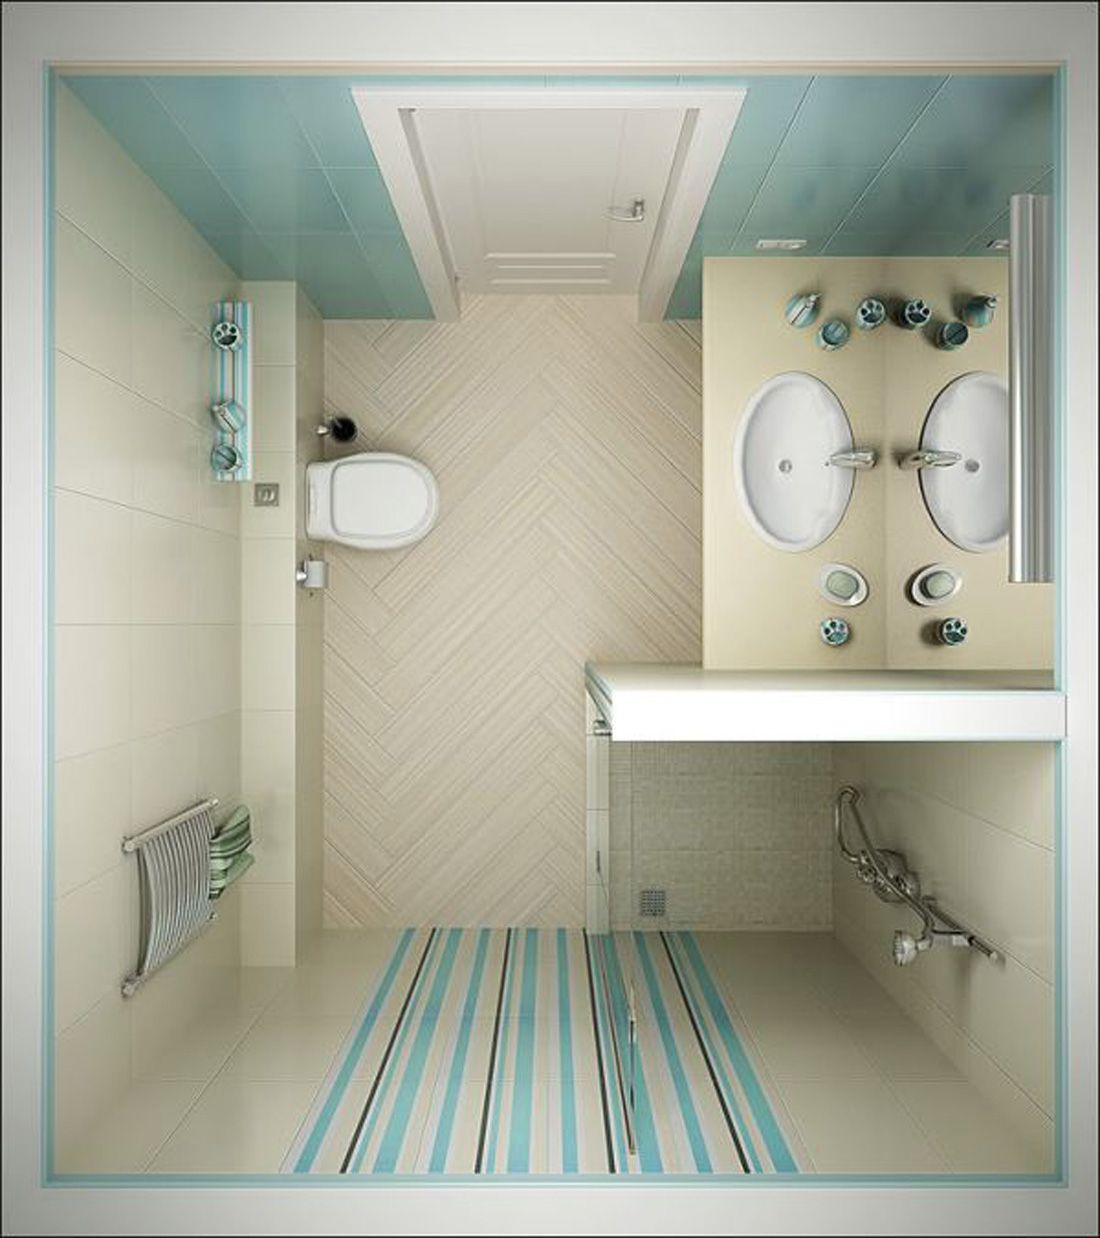 Micro bathroom with a shower | kmndi | Pinterest | Small bathroom ...